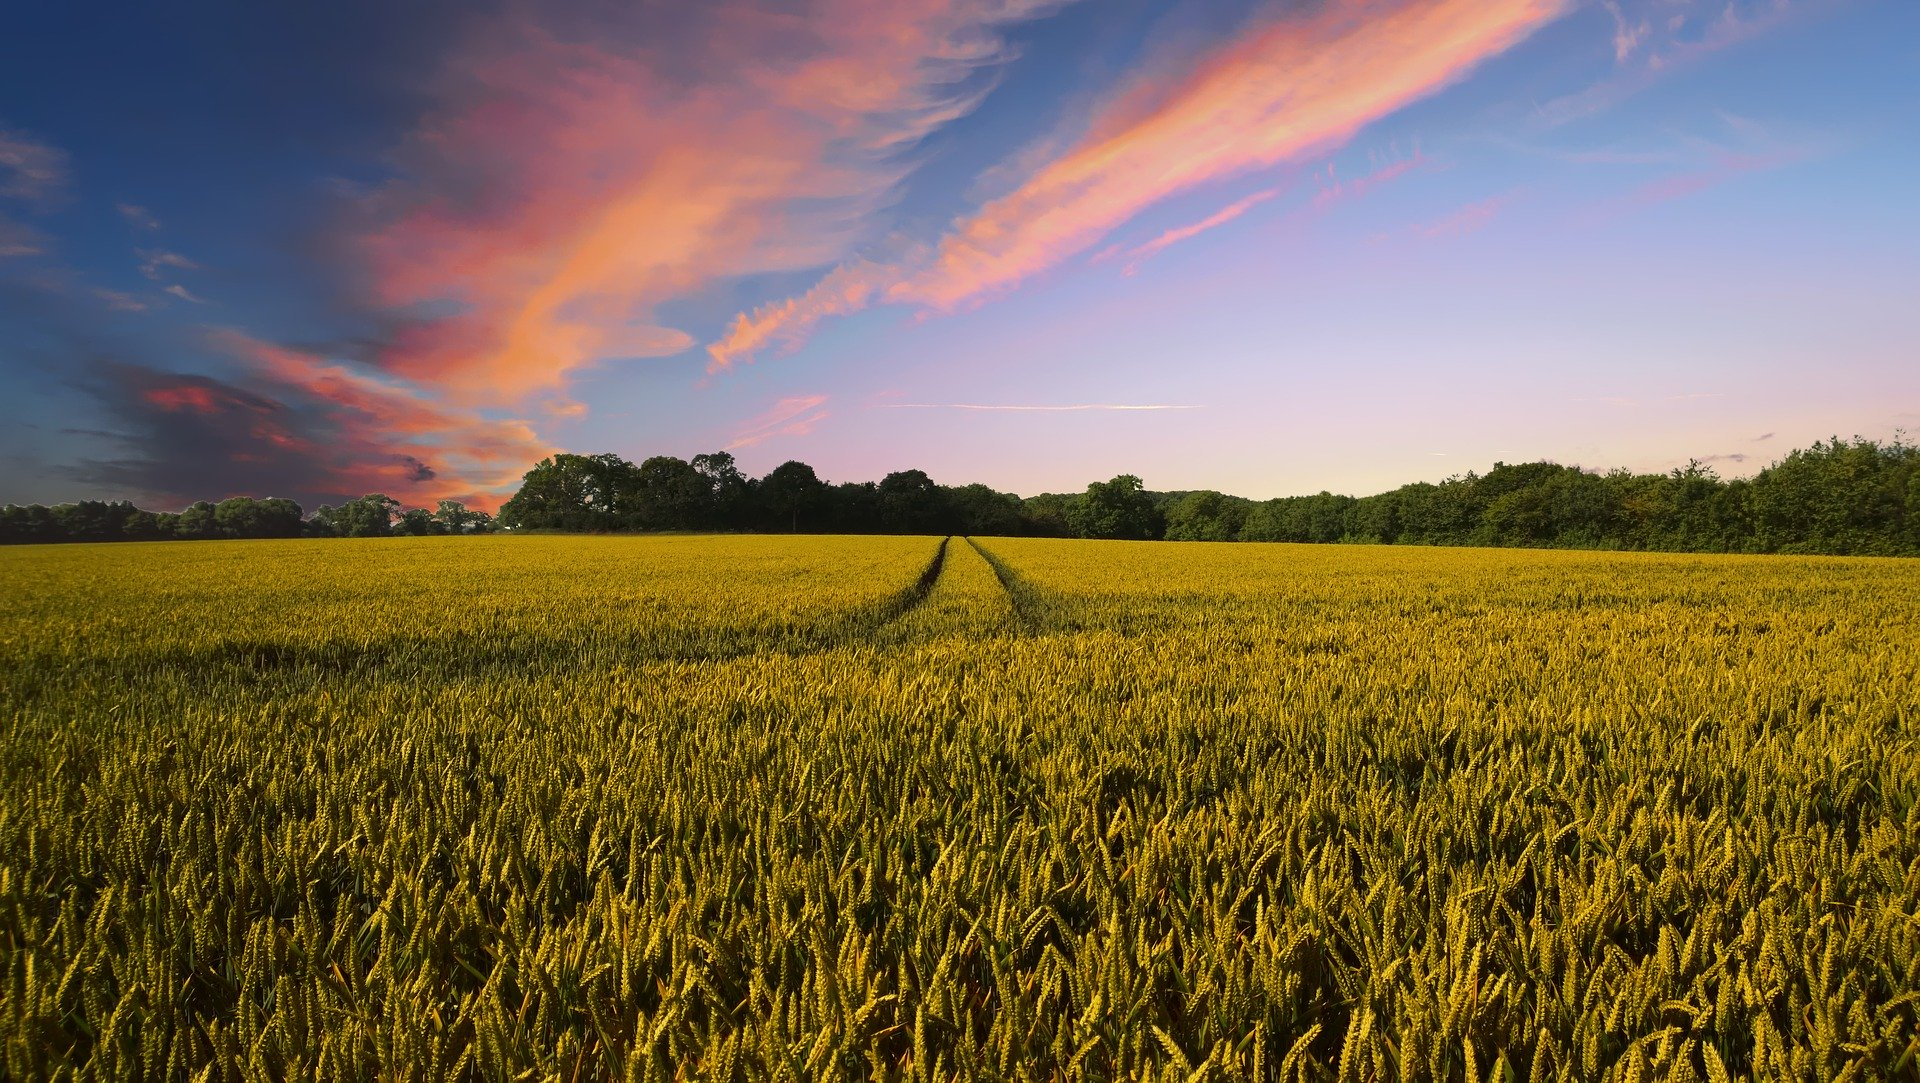 Wheat Field With a Beautiful Pink Sunset - Farm Background Wallpaper Pictures